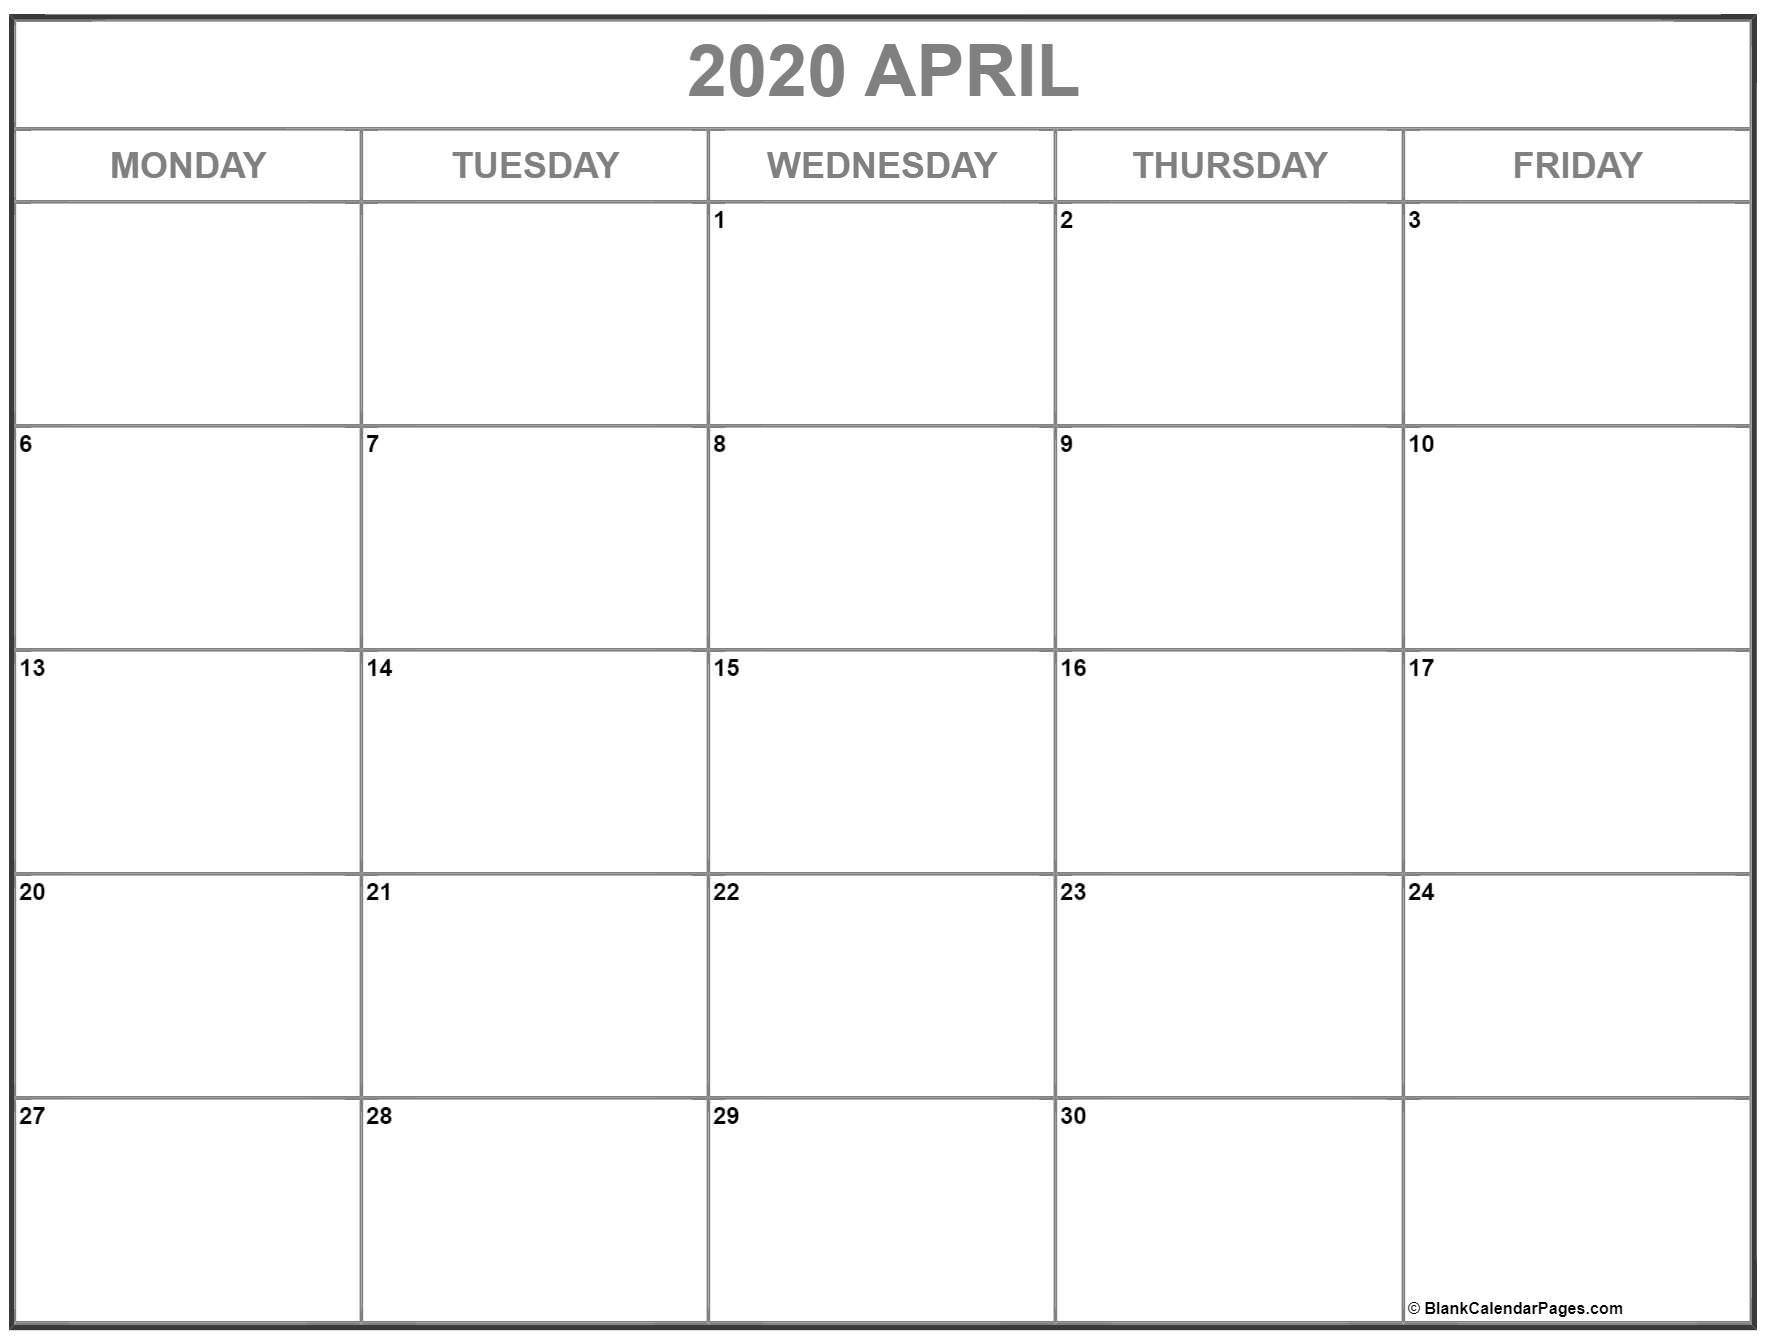 April 2020 Monday Calendar | Monday To Sunday